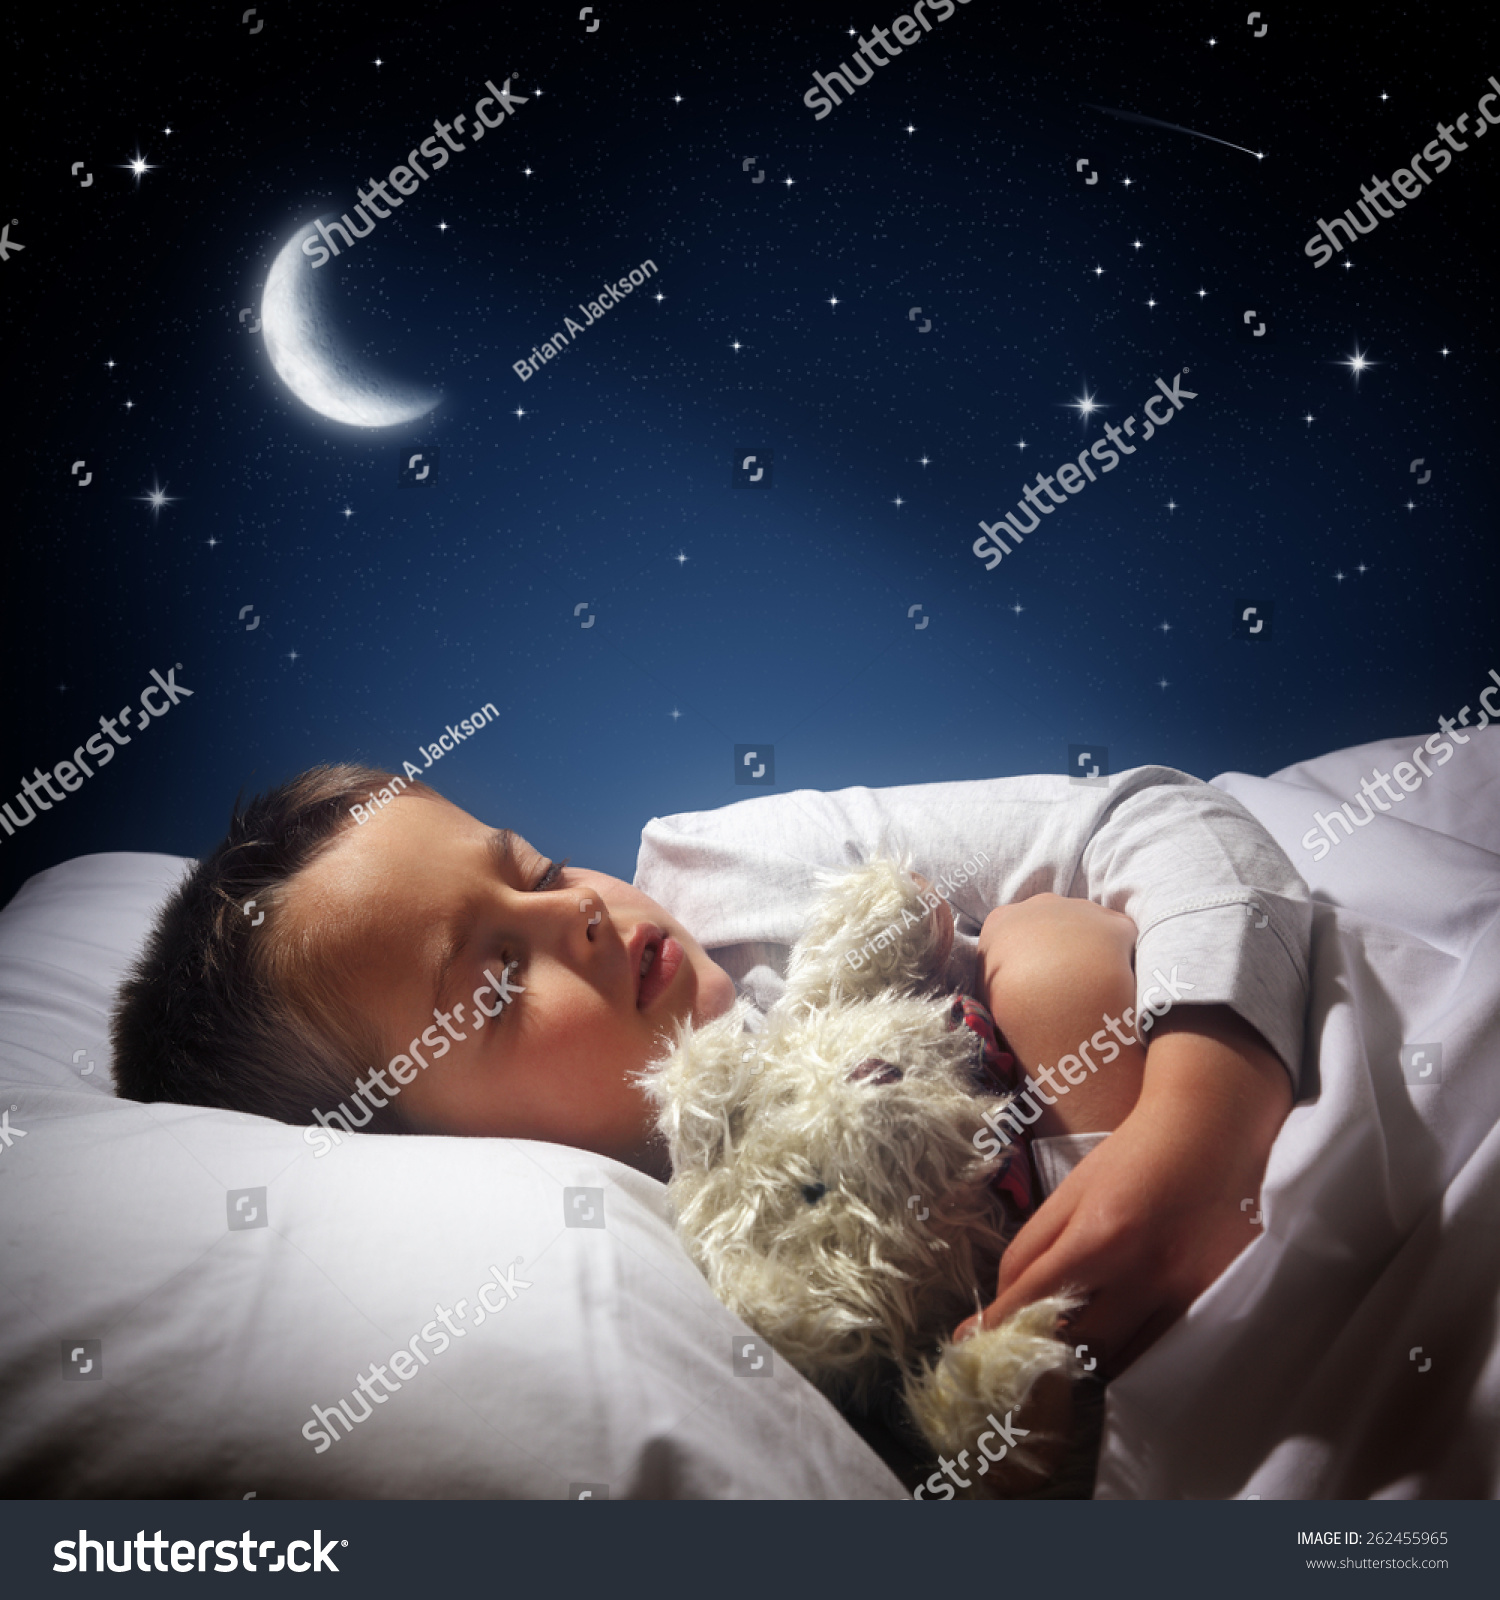 Kids at night with moon royalty free stock photography image - Child Sleeping And Dreaming In His Bed Under The Moon Stars And Blue Night Sky